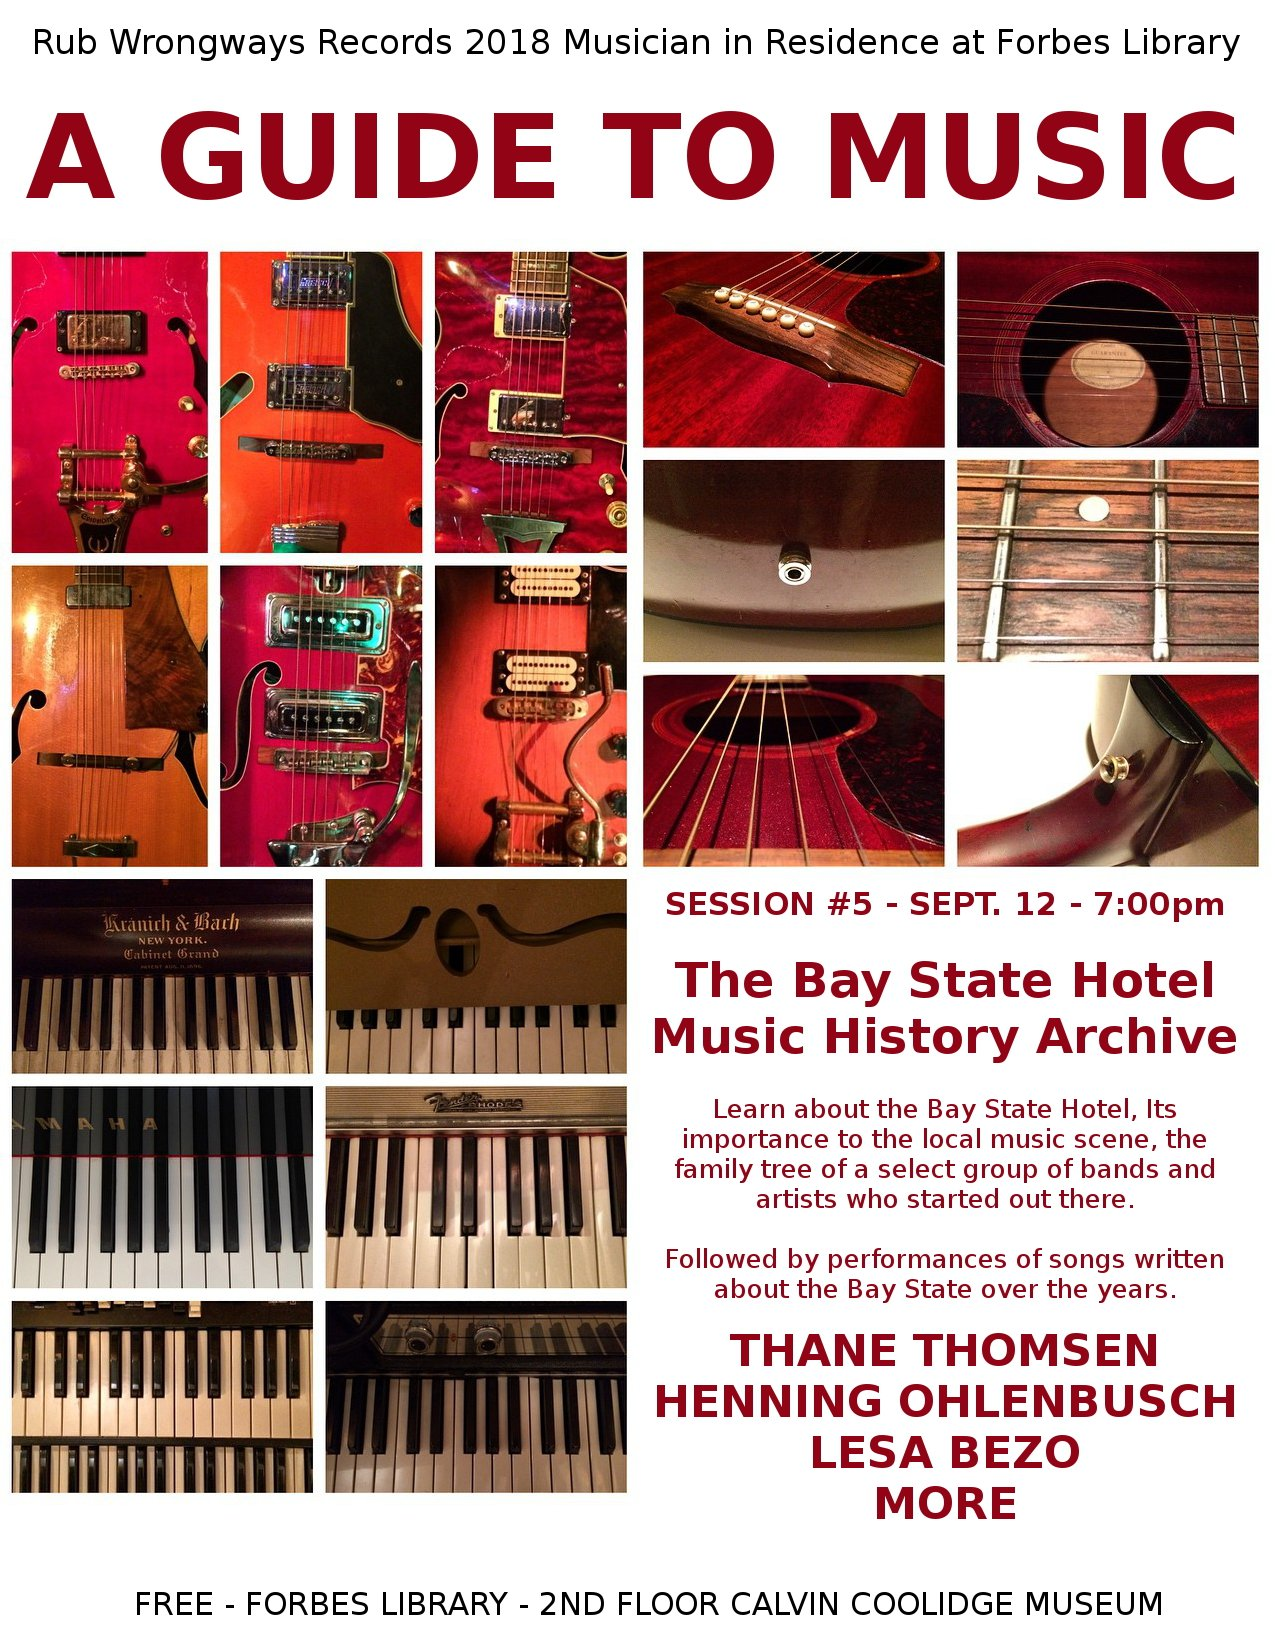 Rub Wrongways Musicians In Residence Event #5: The Bay State Hotel Music History Archive